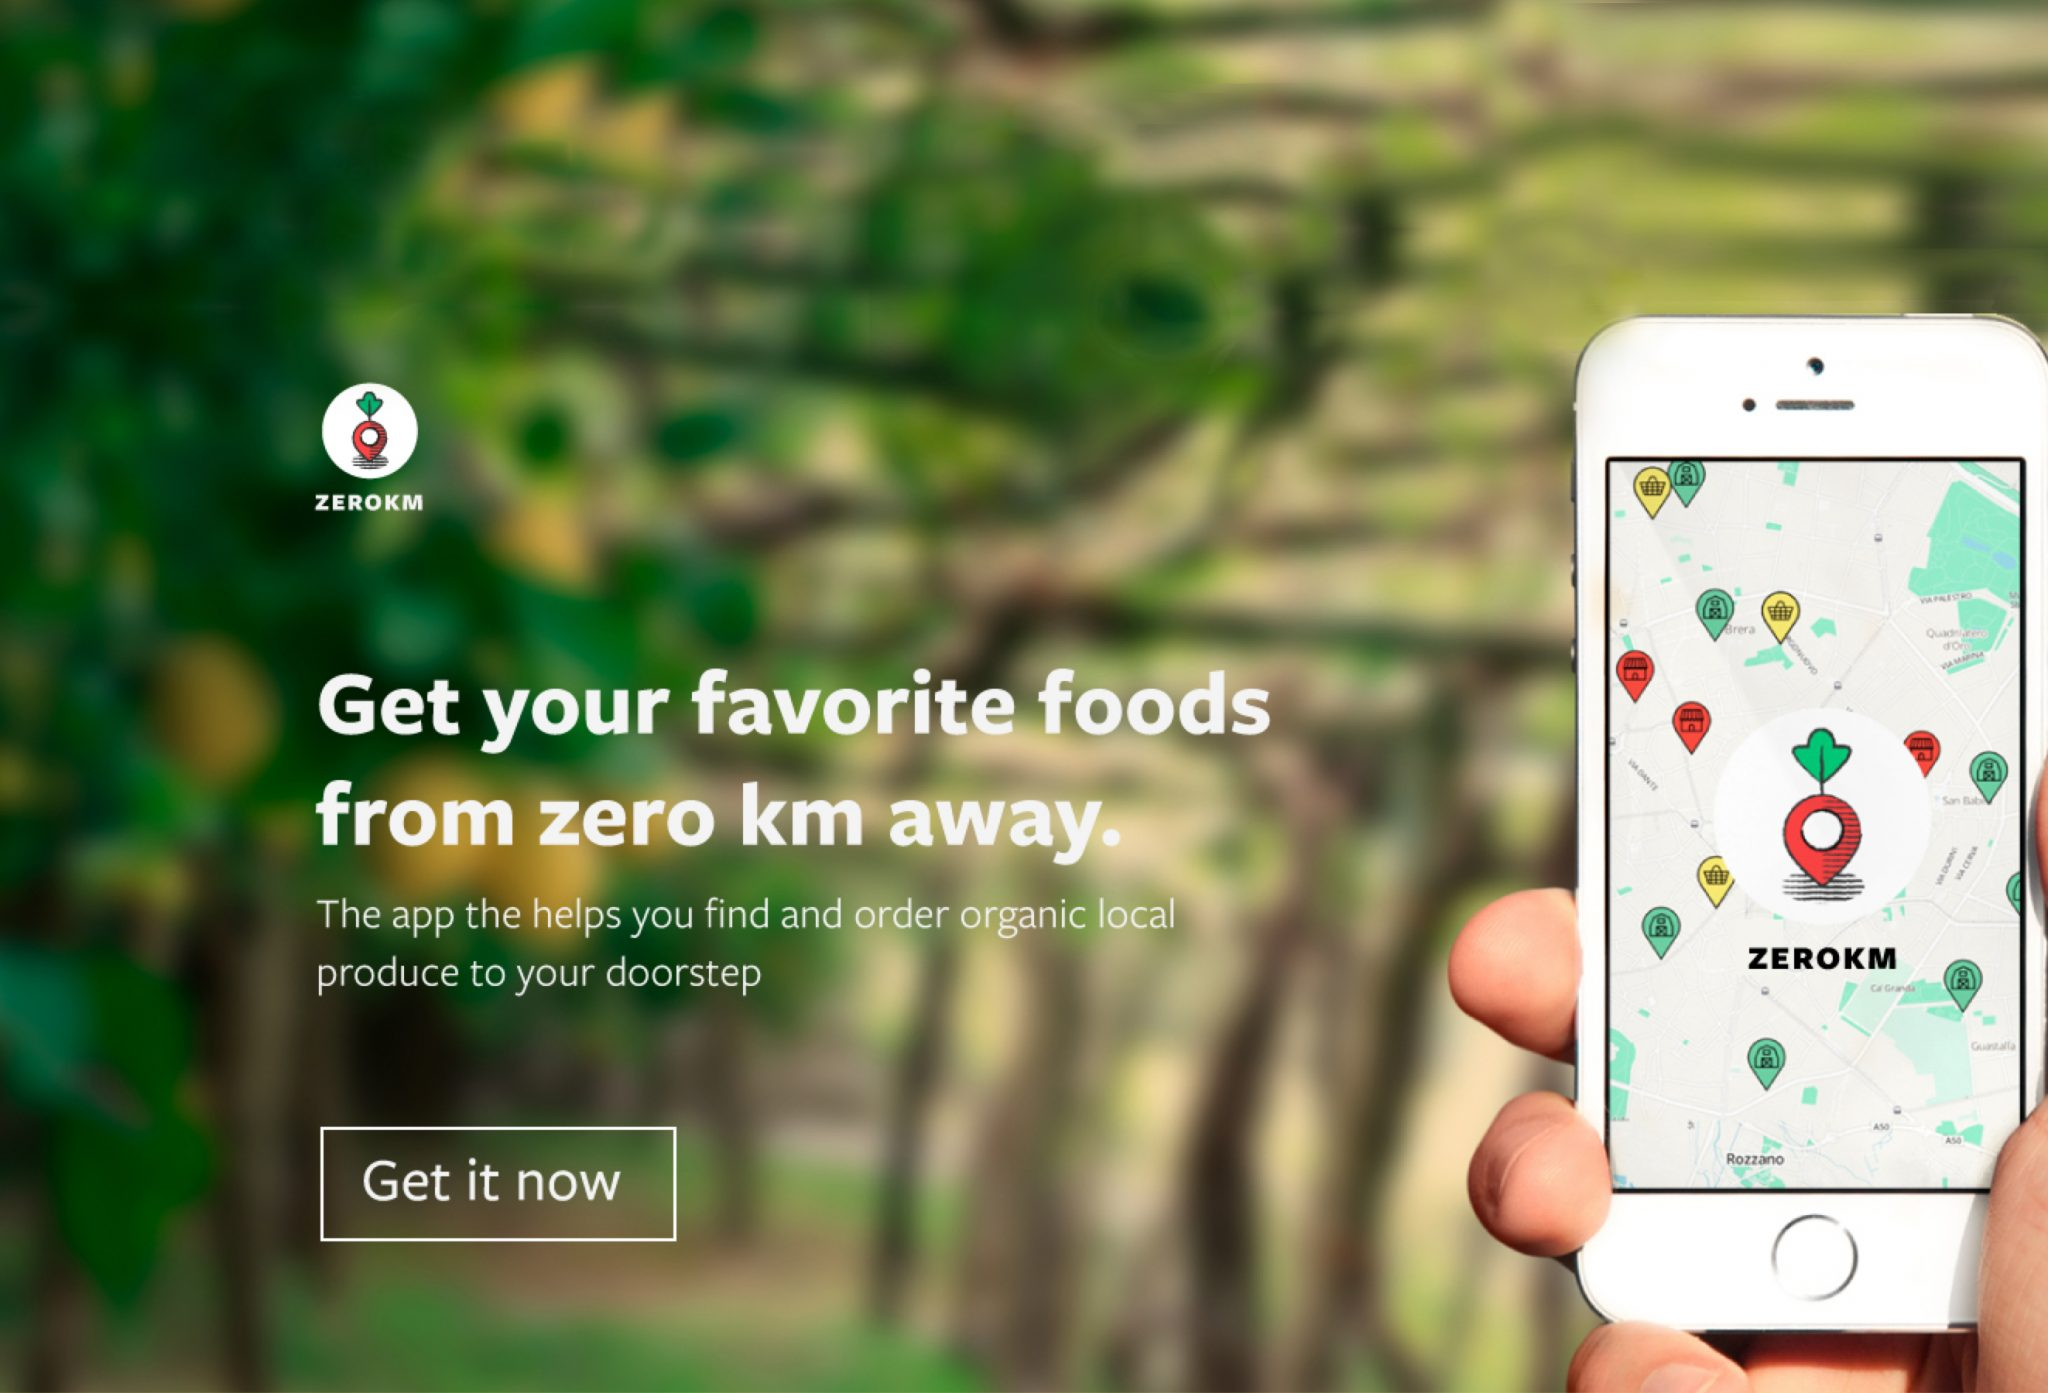 App design and community-based services for Expo 2015.